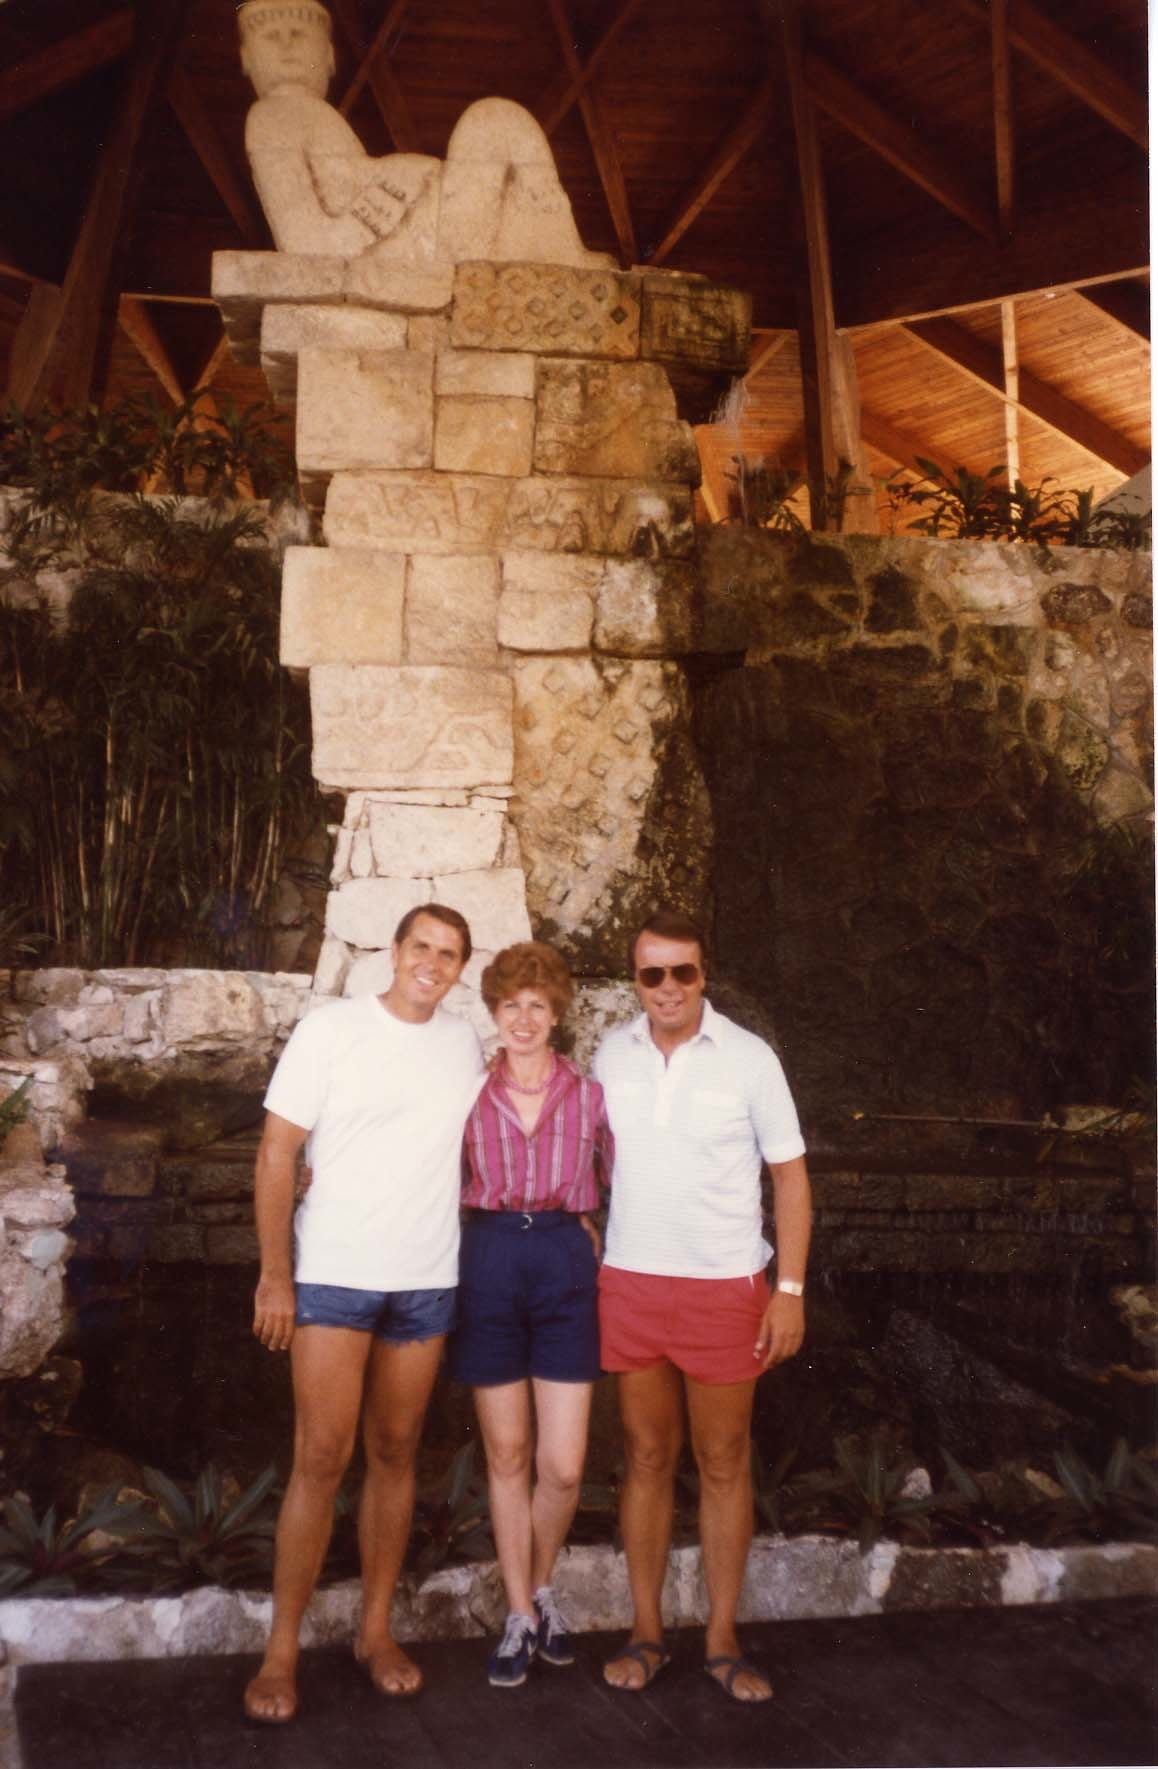 Tom, Betty and Lloyd in Cancun, Trip to Cazumel and Cancun, Mexico, August 20-27, 1983